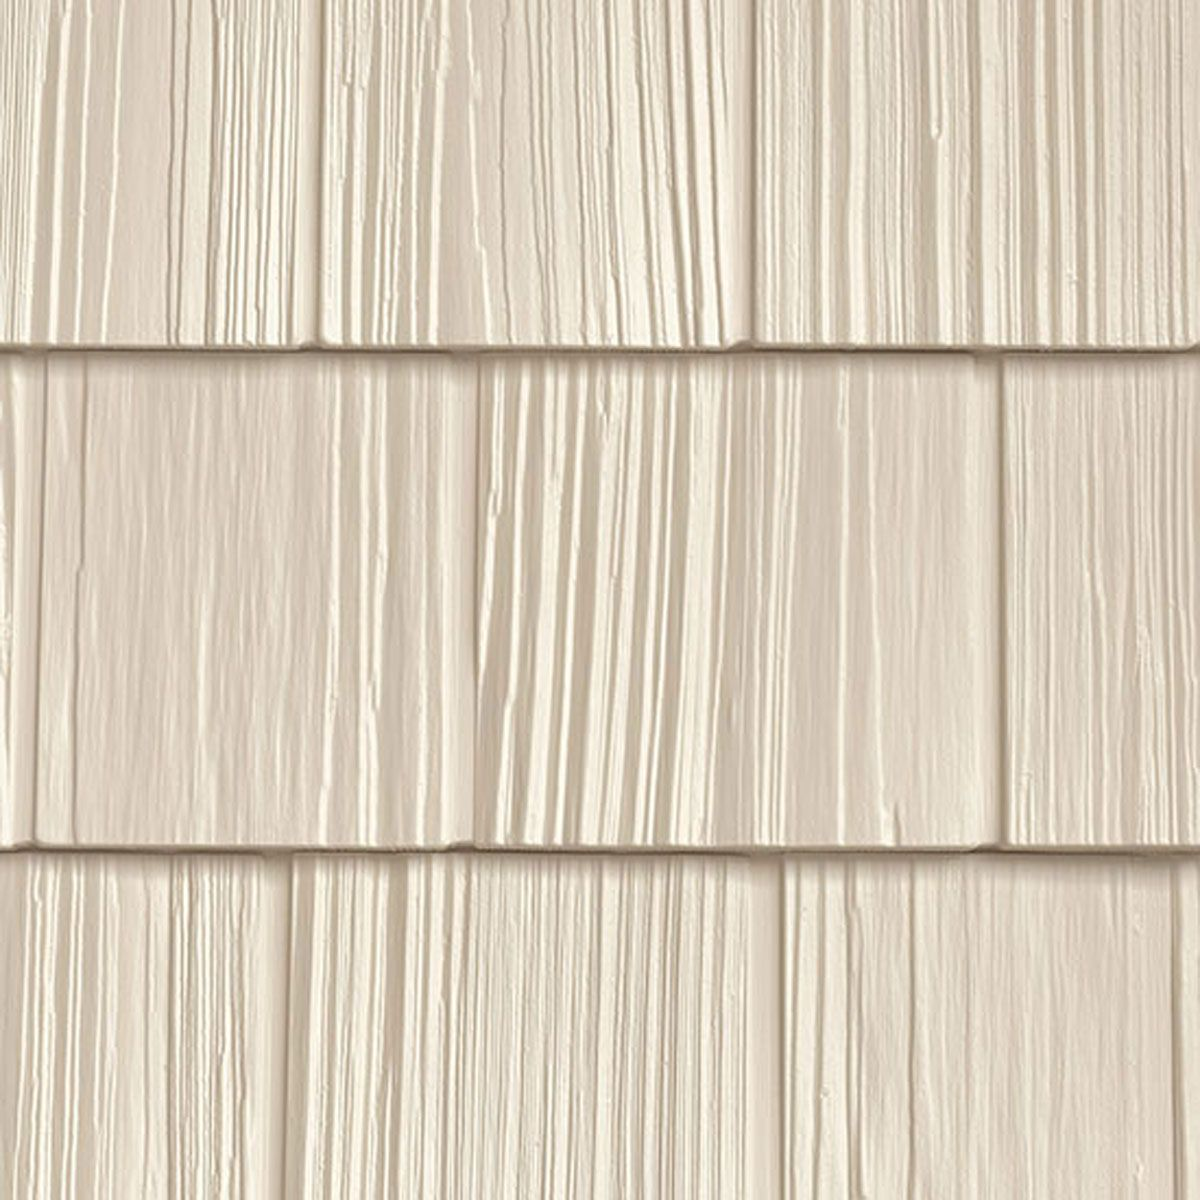 7 Inch W X 60 3 4 Inch L Exposure Vinyl Split Shakes 34 Panels Ctn 100 Sq Feet Shingle Siding Vinyl Siding Vinyl Siding Panels